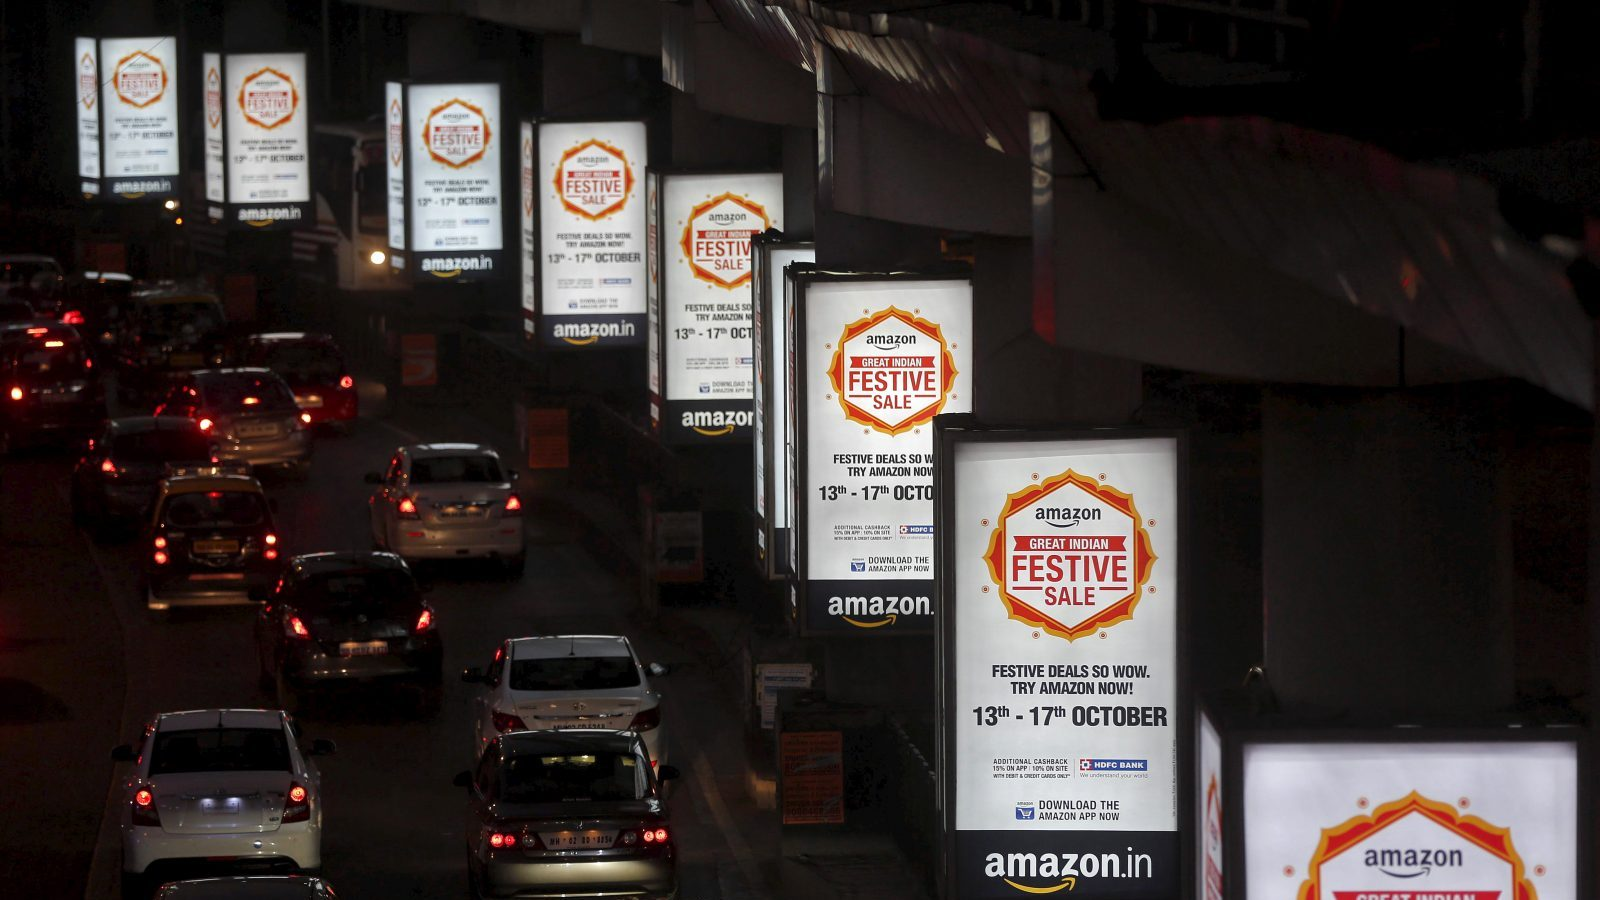 Traffic moves on a road past advertisements of Indian online marketplace Amazon, in Mumbai, India, October 15, 2015. Amazon.com could emerge as the biggest winner from one of India's most important festive - and shopping - seasons that began this week, after the e-tailer offered steep discounts, swift delivery and even gold bars to grab market share. The month-long festive season culminates around November 10 in Diwali, or the Festival of Lights, but the first nine days are considered an especially auspicious time to make big purchases. Picture taken October 15, 2015.   REUTERS/Shailesh Andrade - GF10000246868